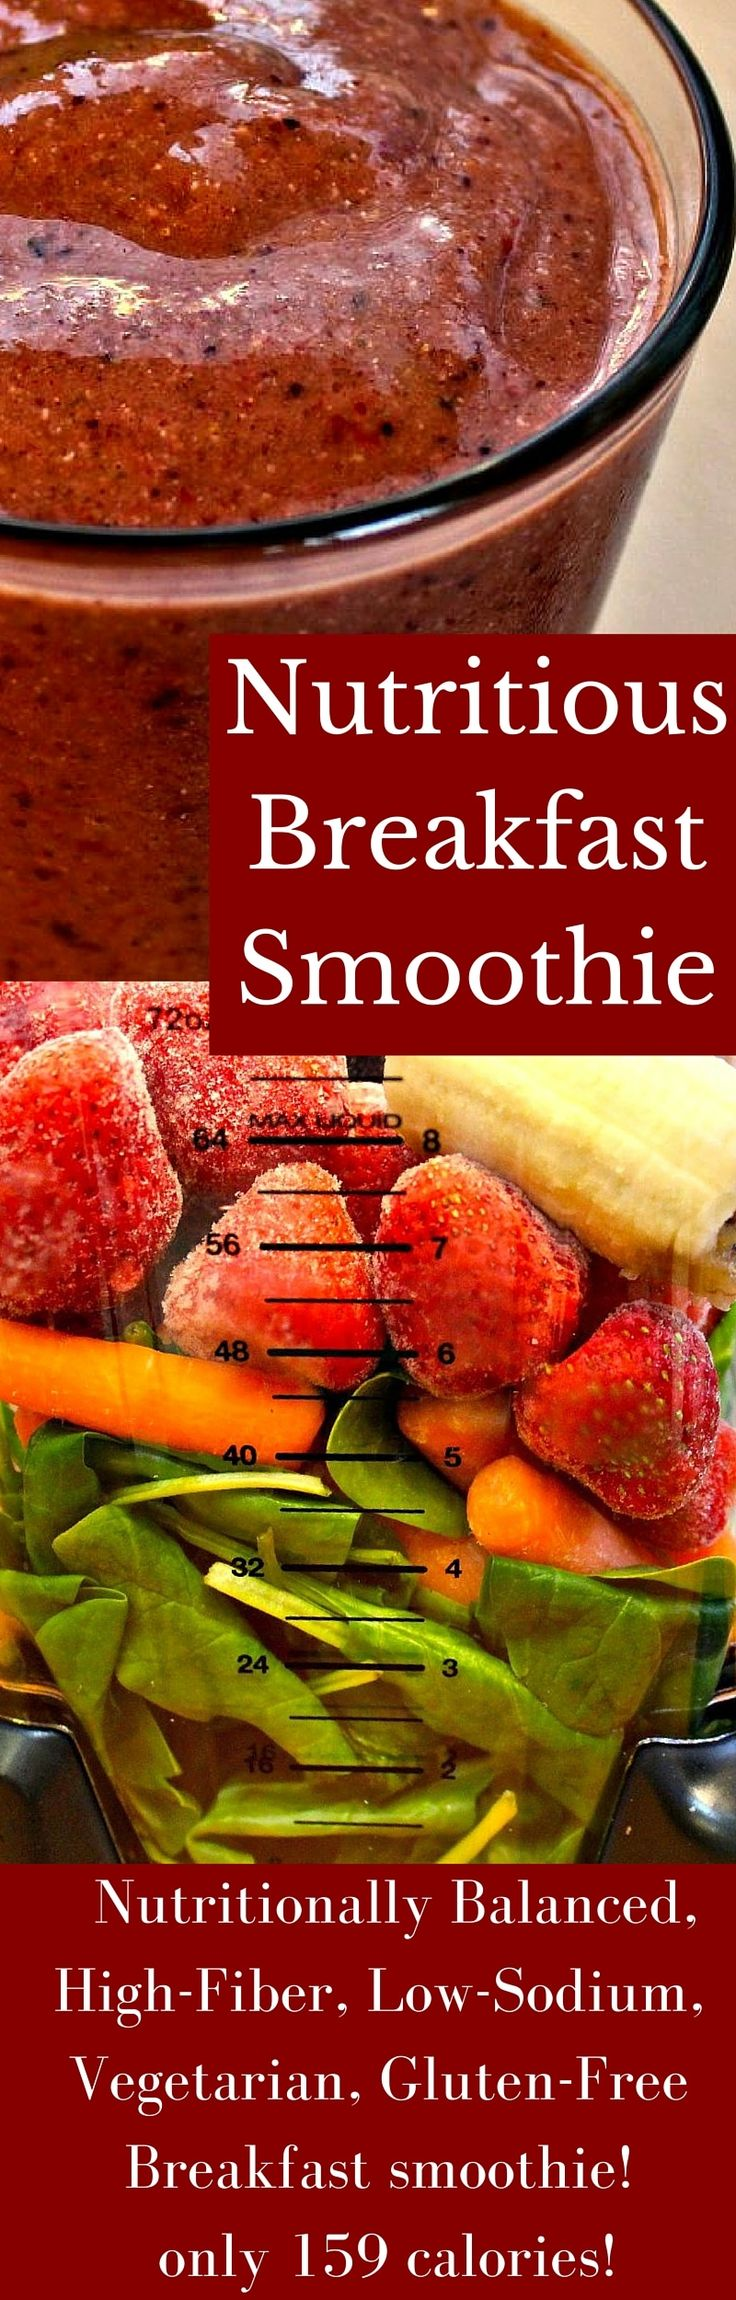 A nutritious breakfast smoothie to help you kickstart your day into full gear! This Nutritionally Balanced, High-​Fiber, Low-​Sodium, Vegetarian, Gluten-​Free Breakfast smoothie has only 159 calories! #smoothies #healthy #breakfast #healthyfood #healthybreakfastideas #nutritious